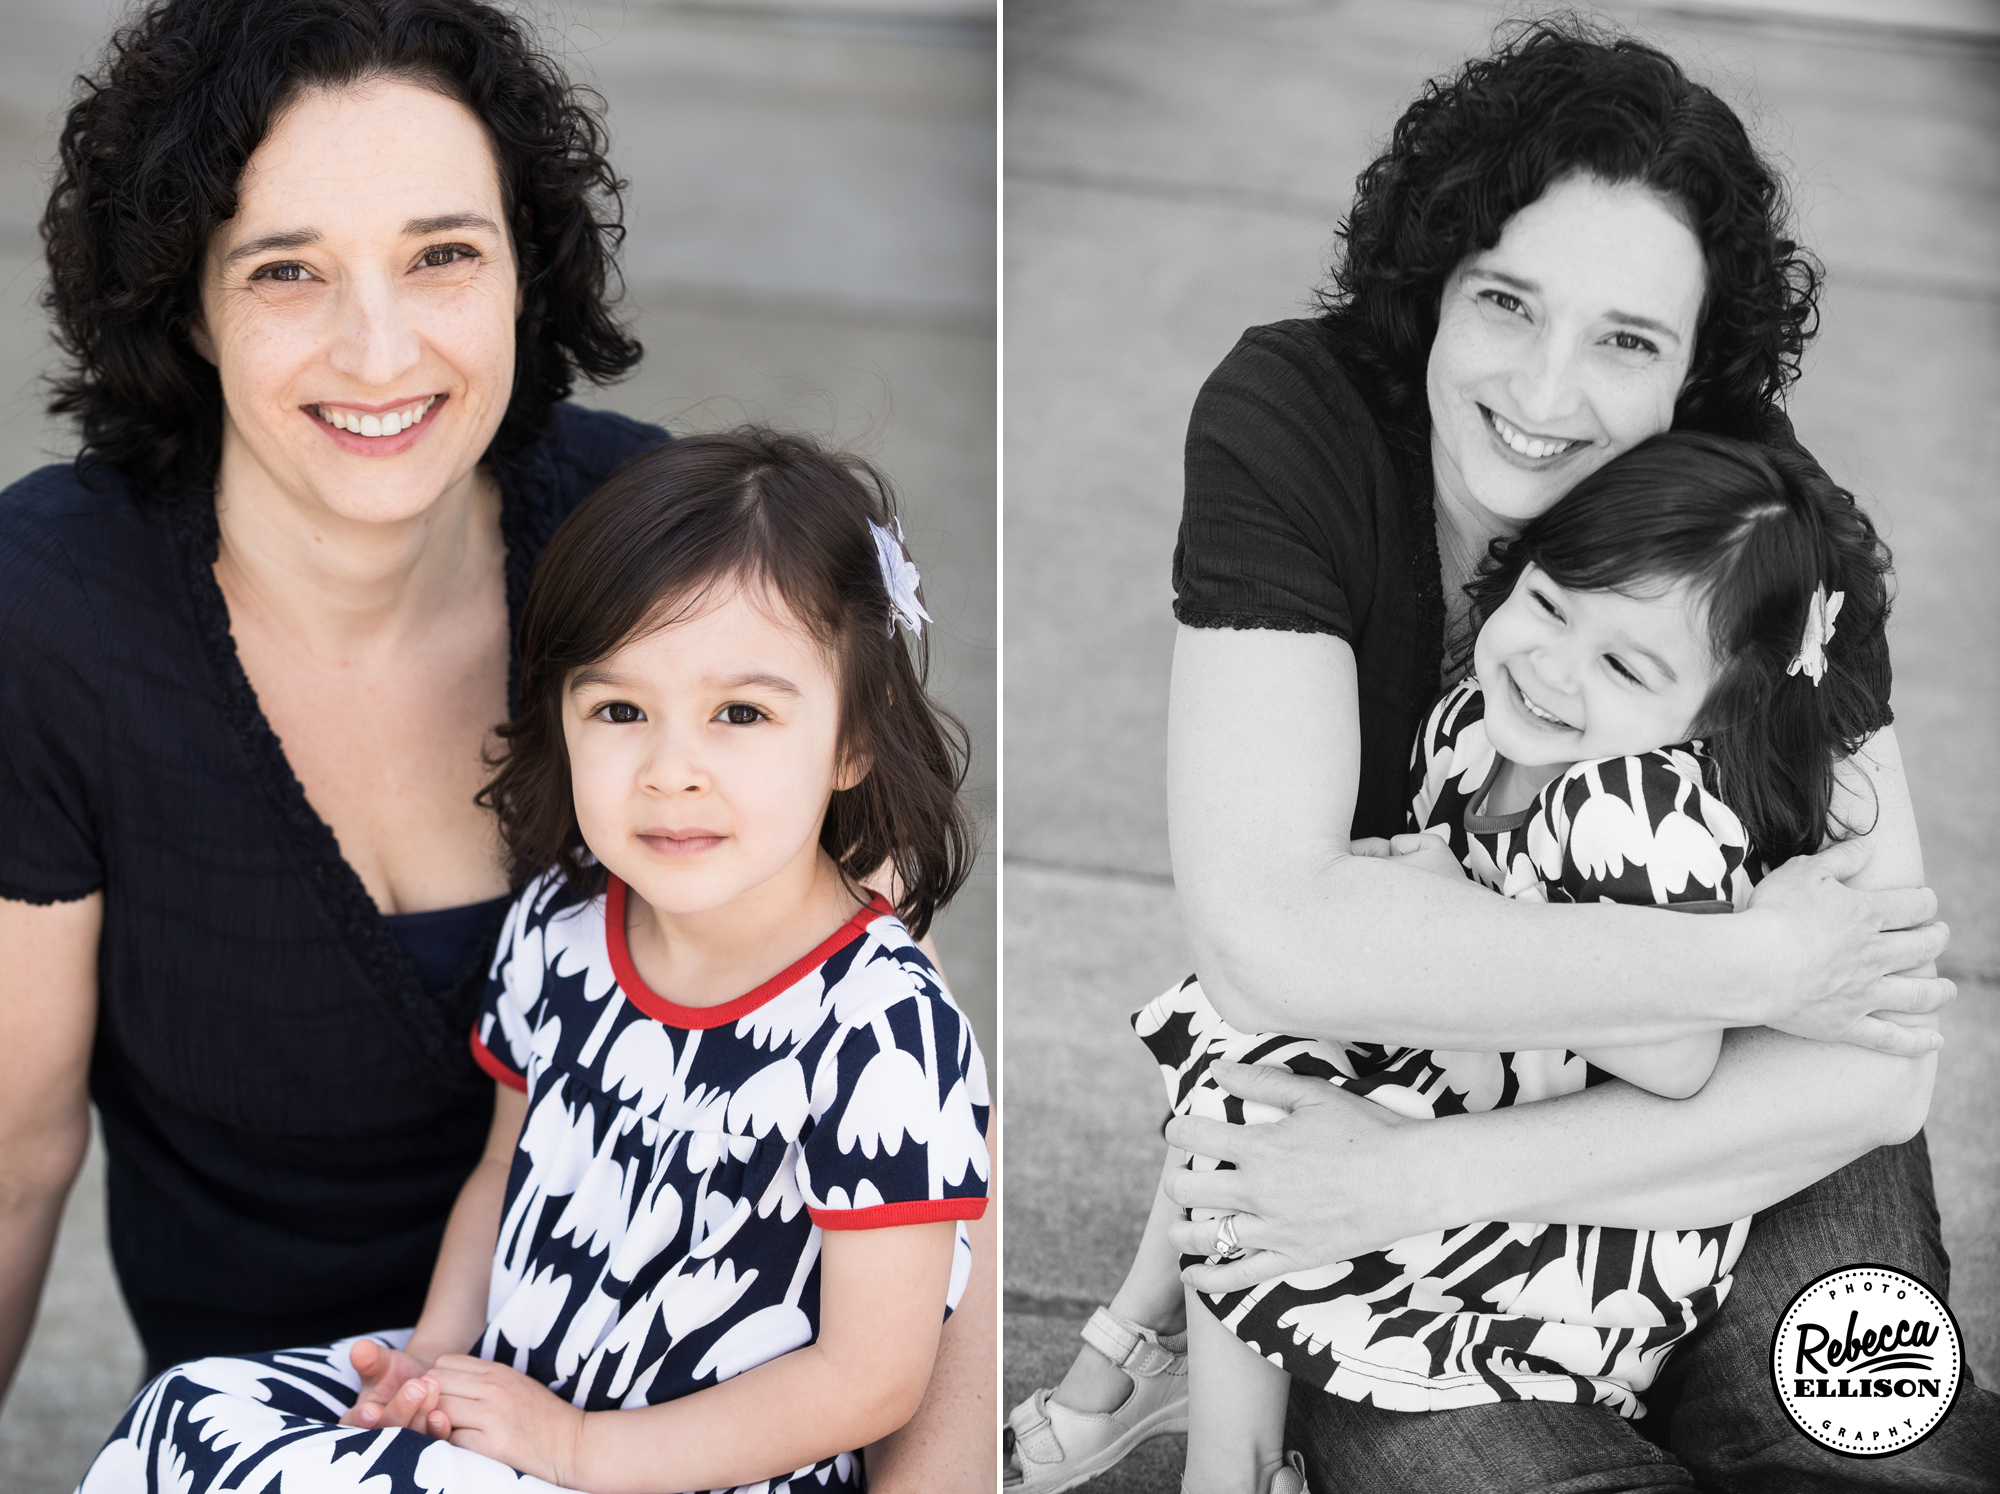 Mother and daughter sit together during Kirkland family portraits photographed by Rebecca Ellison Photography